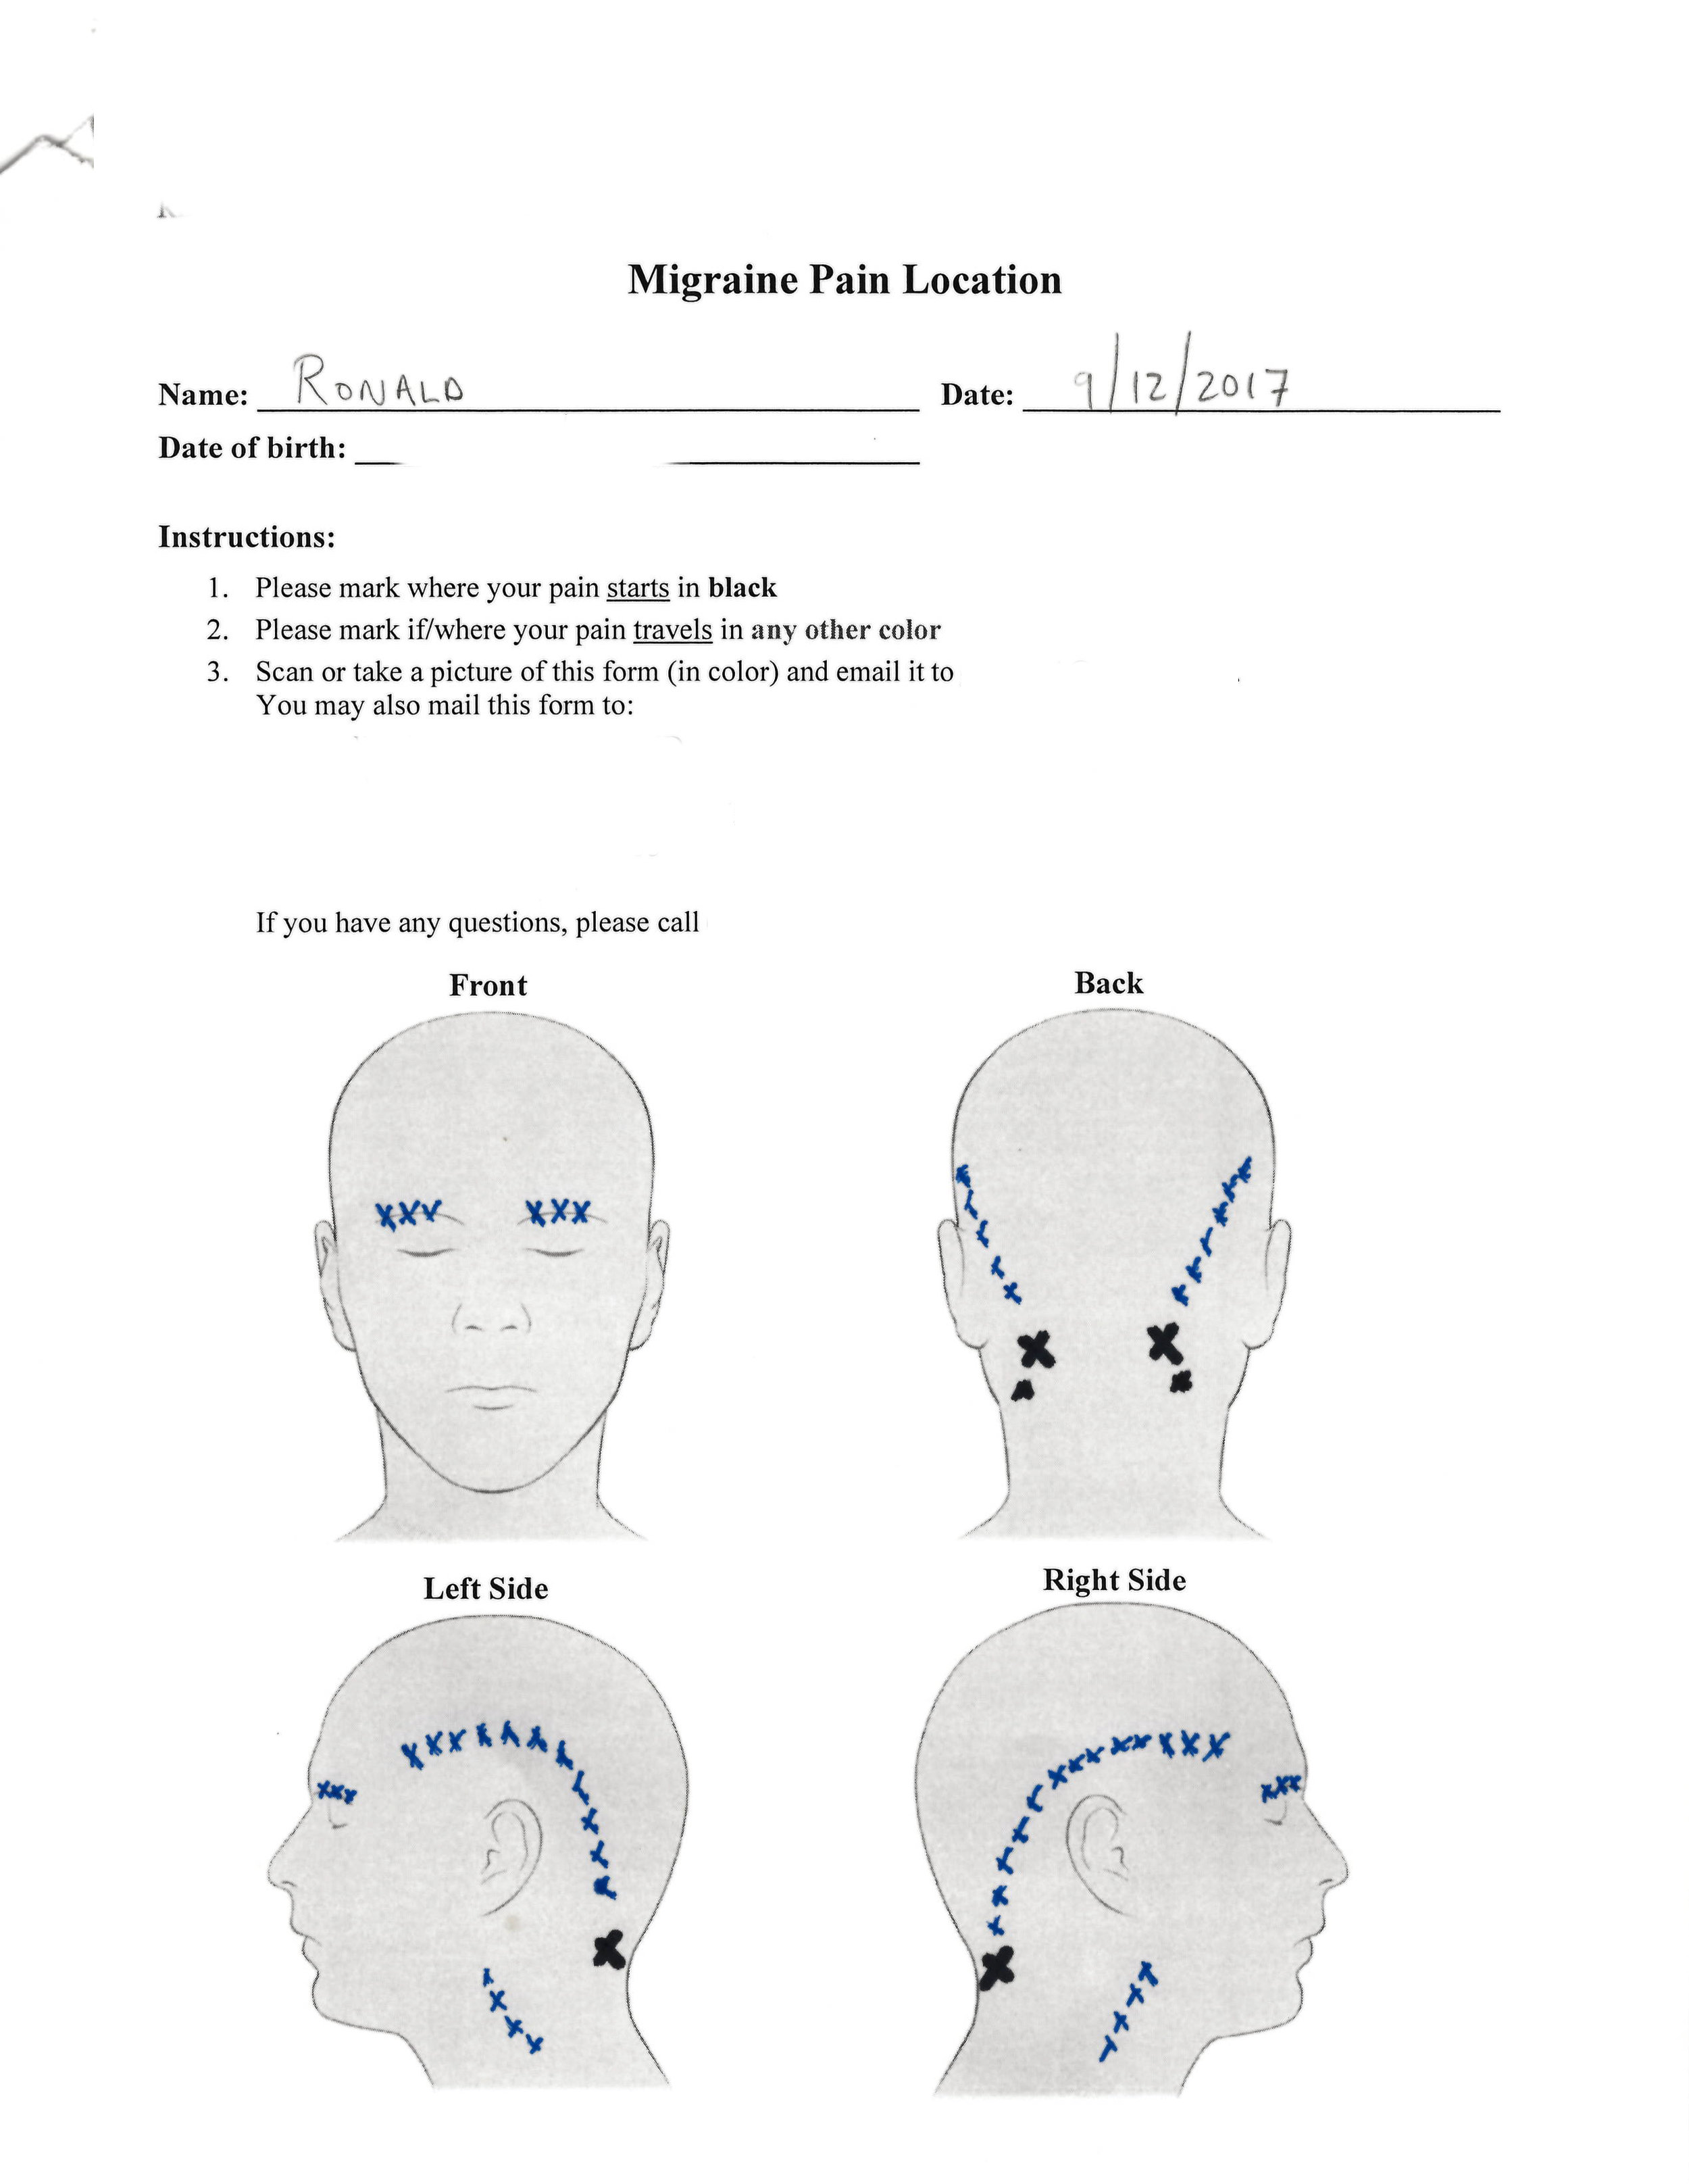 I submitted this form as part of migraine surgery pre-screening.